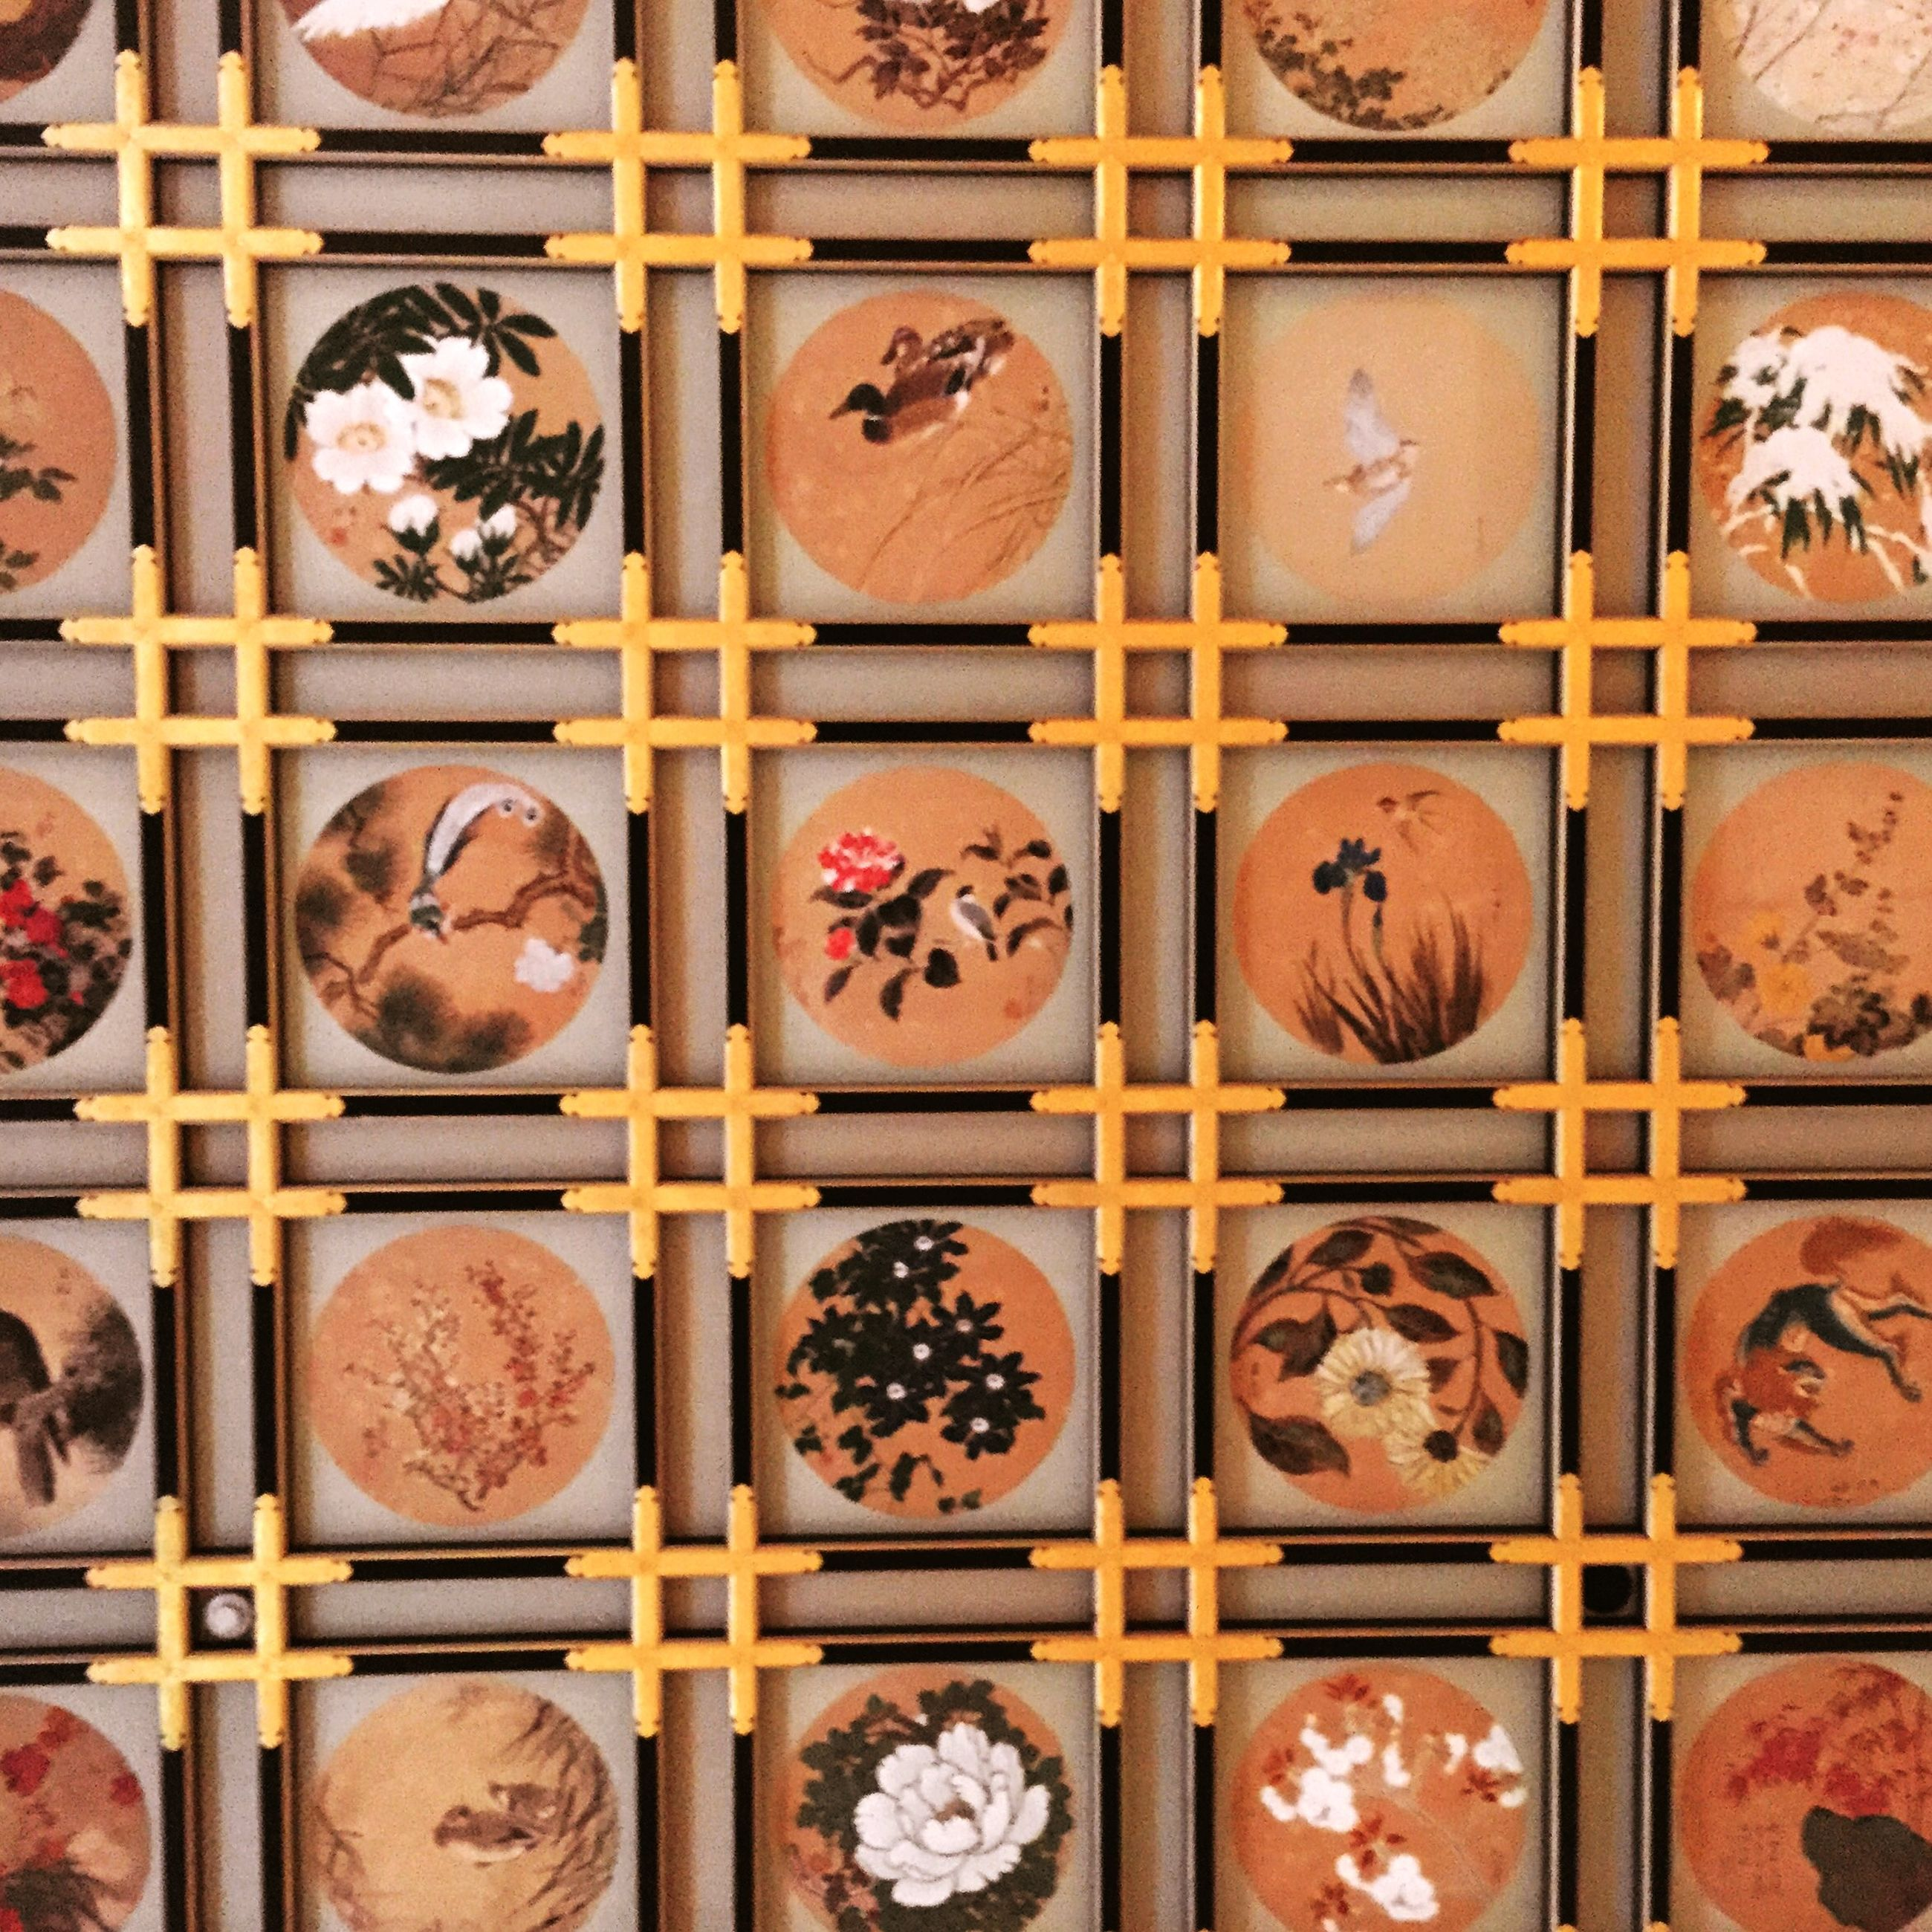 indoors, full frame, backgrounds, variation, in a row, abundance, arrangement, large group of objects, side by side, order, choice, still life, for sale, repetition, retail, display, store, collection, close-up, sweet food